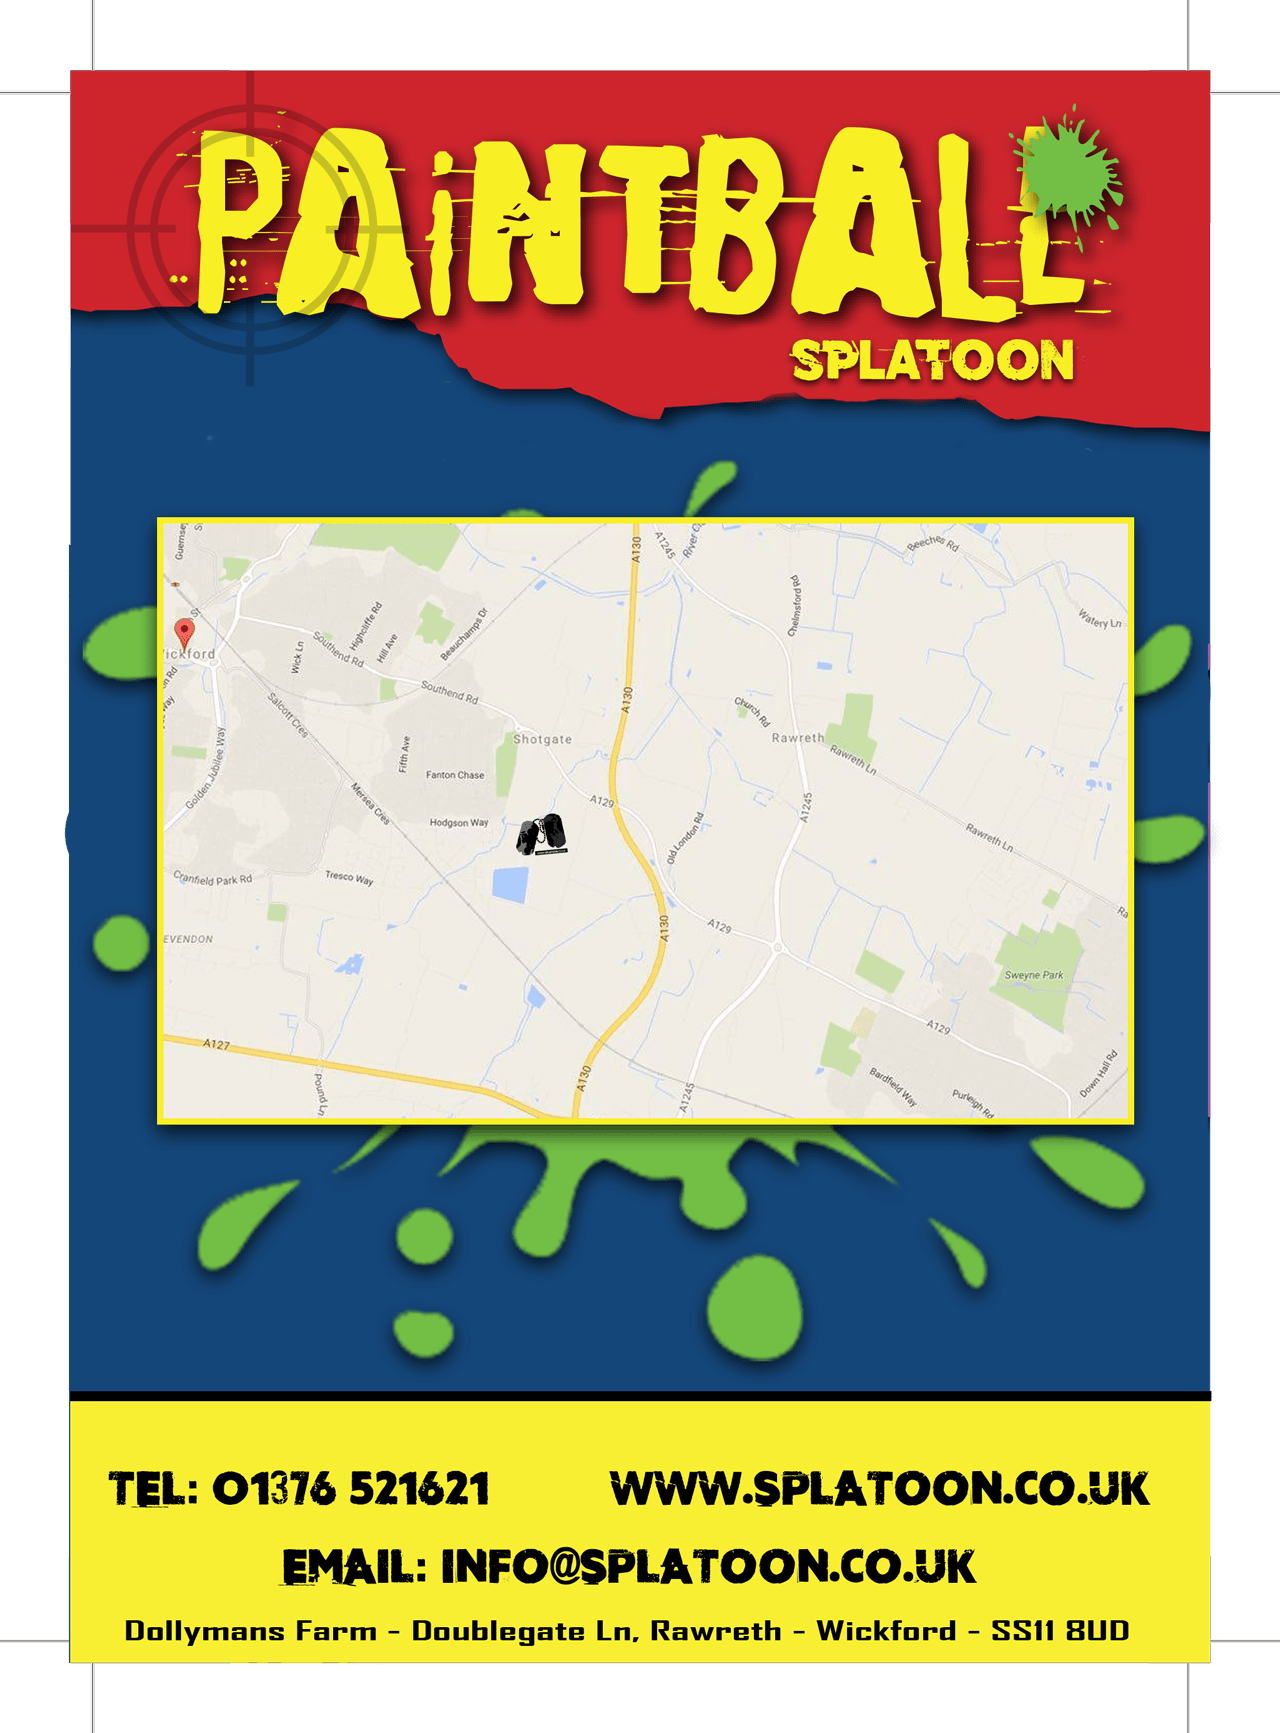 Downloads Splatoon Paintball - Cant find us on map